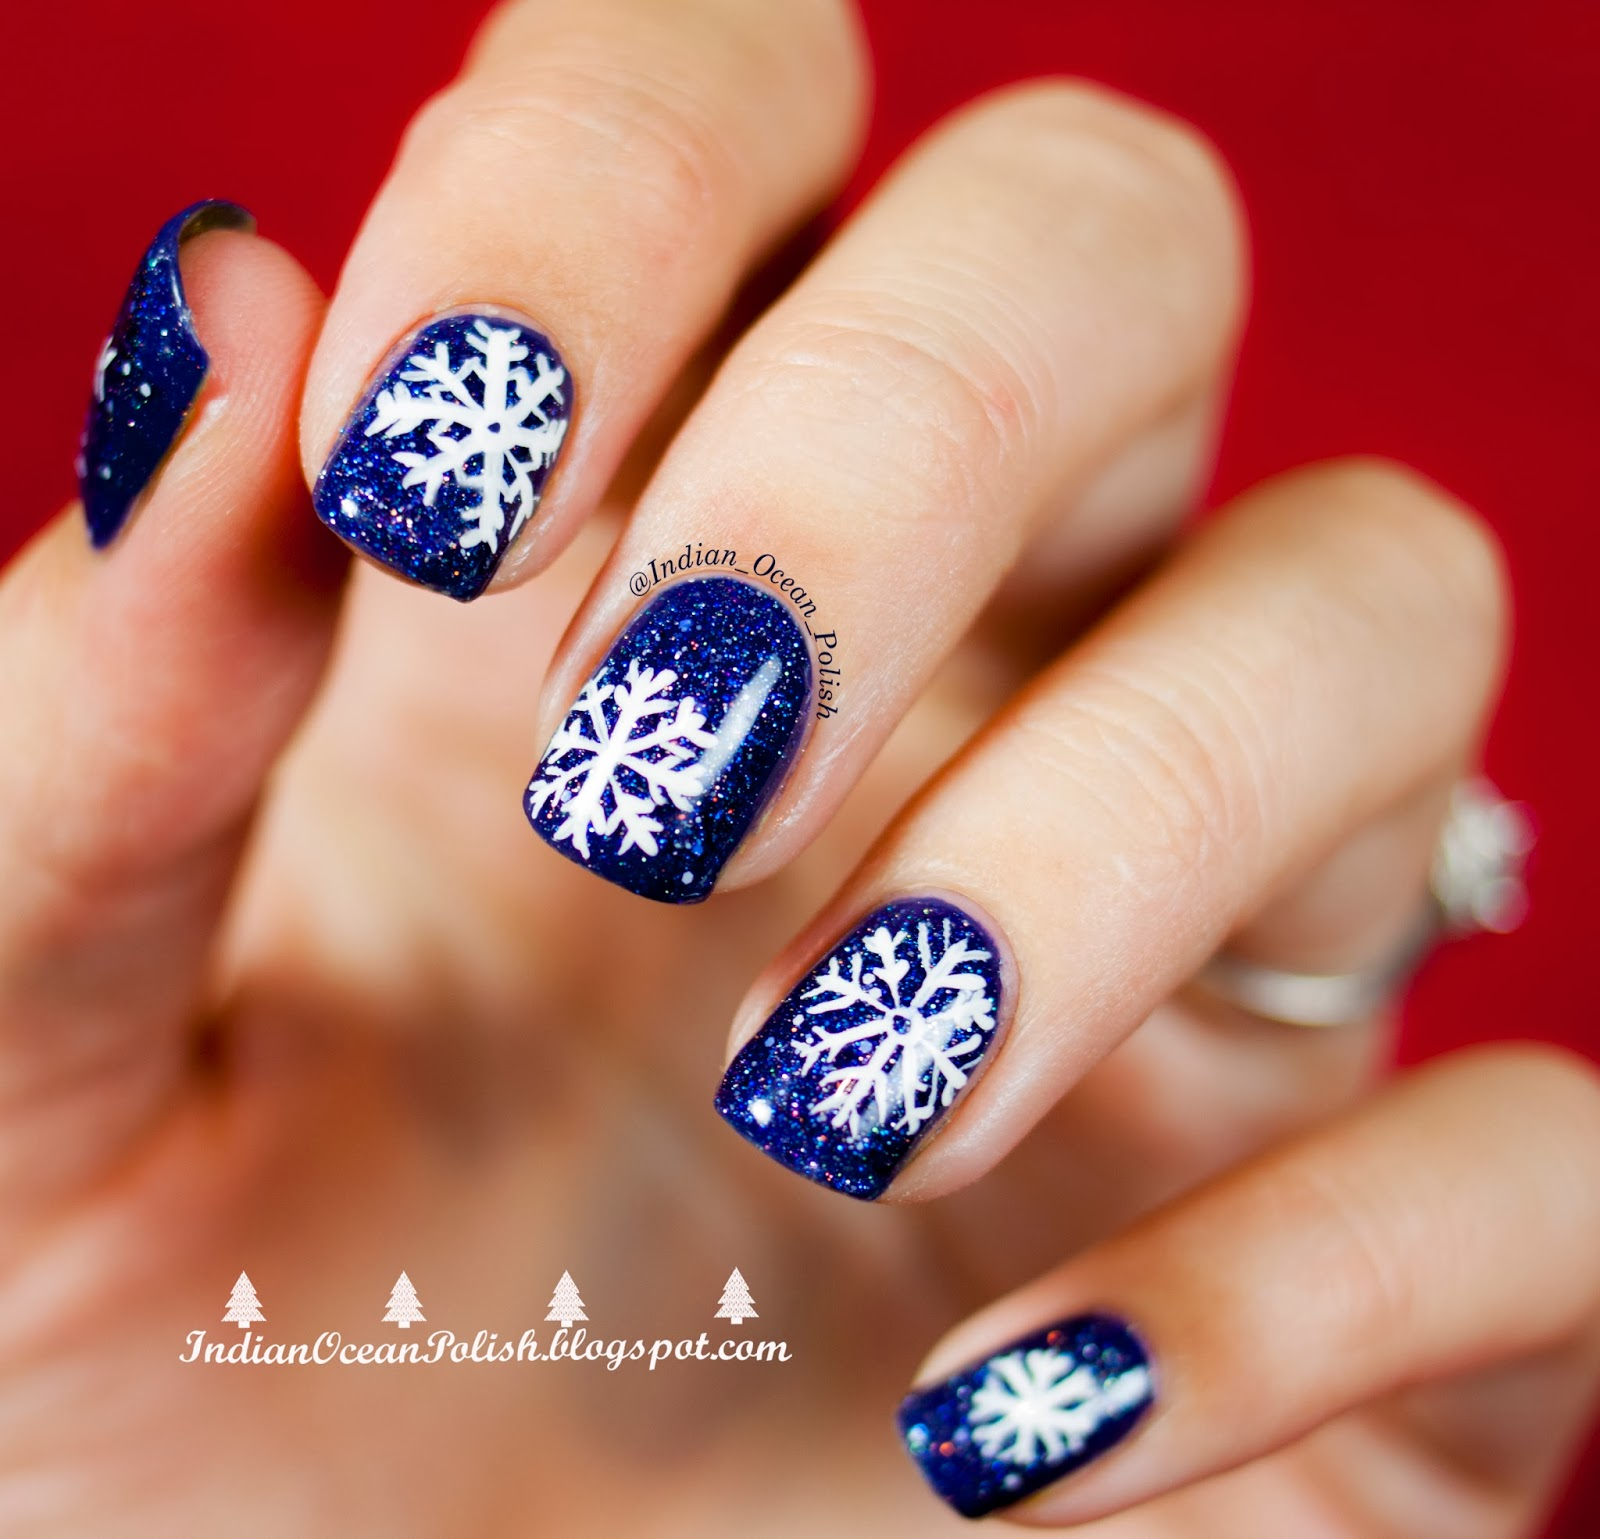 Nail Art Ideas: Indian Ocean Polish: Christmas 2013 Nail Art Ideas: Simple